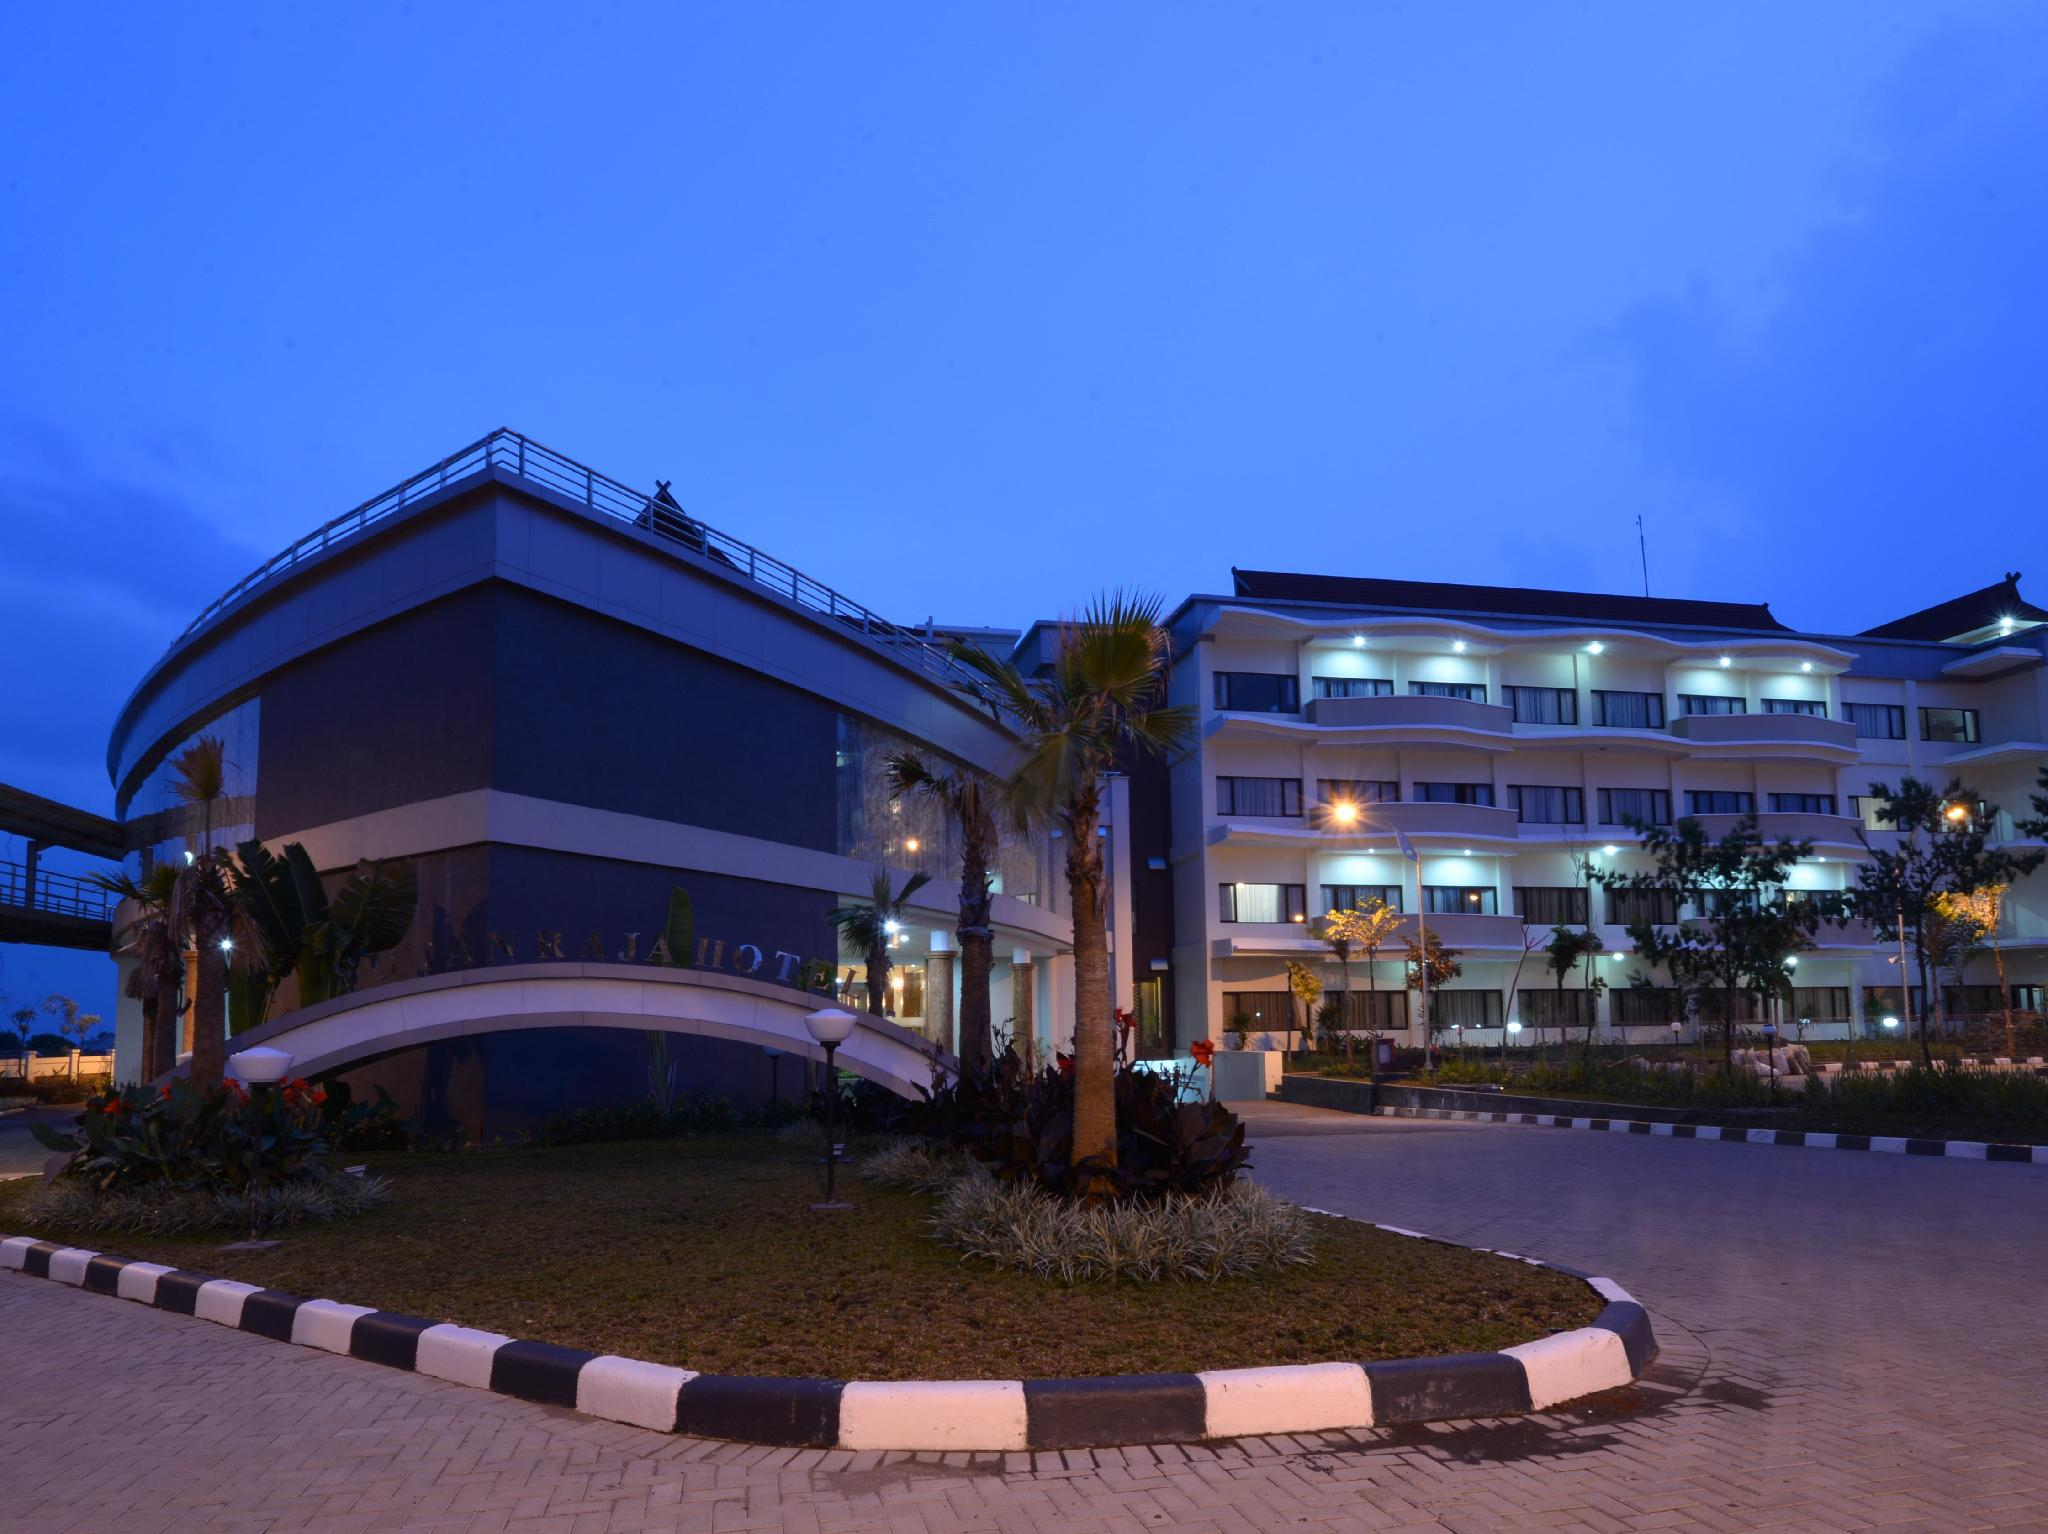 Sutan Raja Hotel And Convention Centre - Hotels and Accommodation in Indonesia, Asia